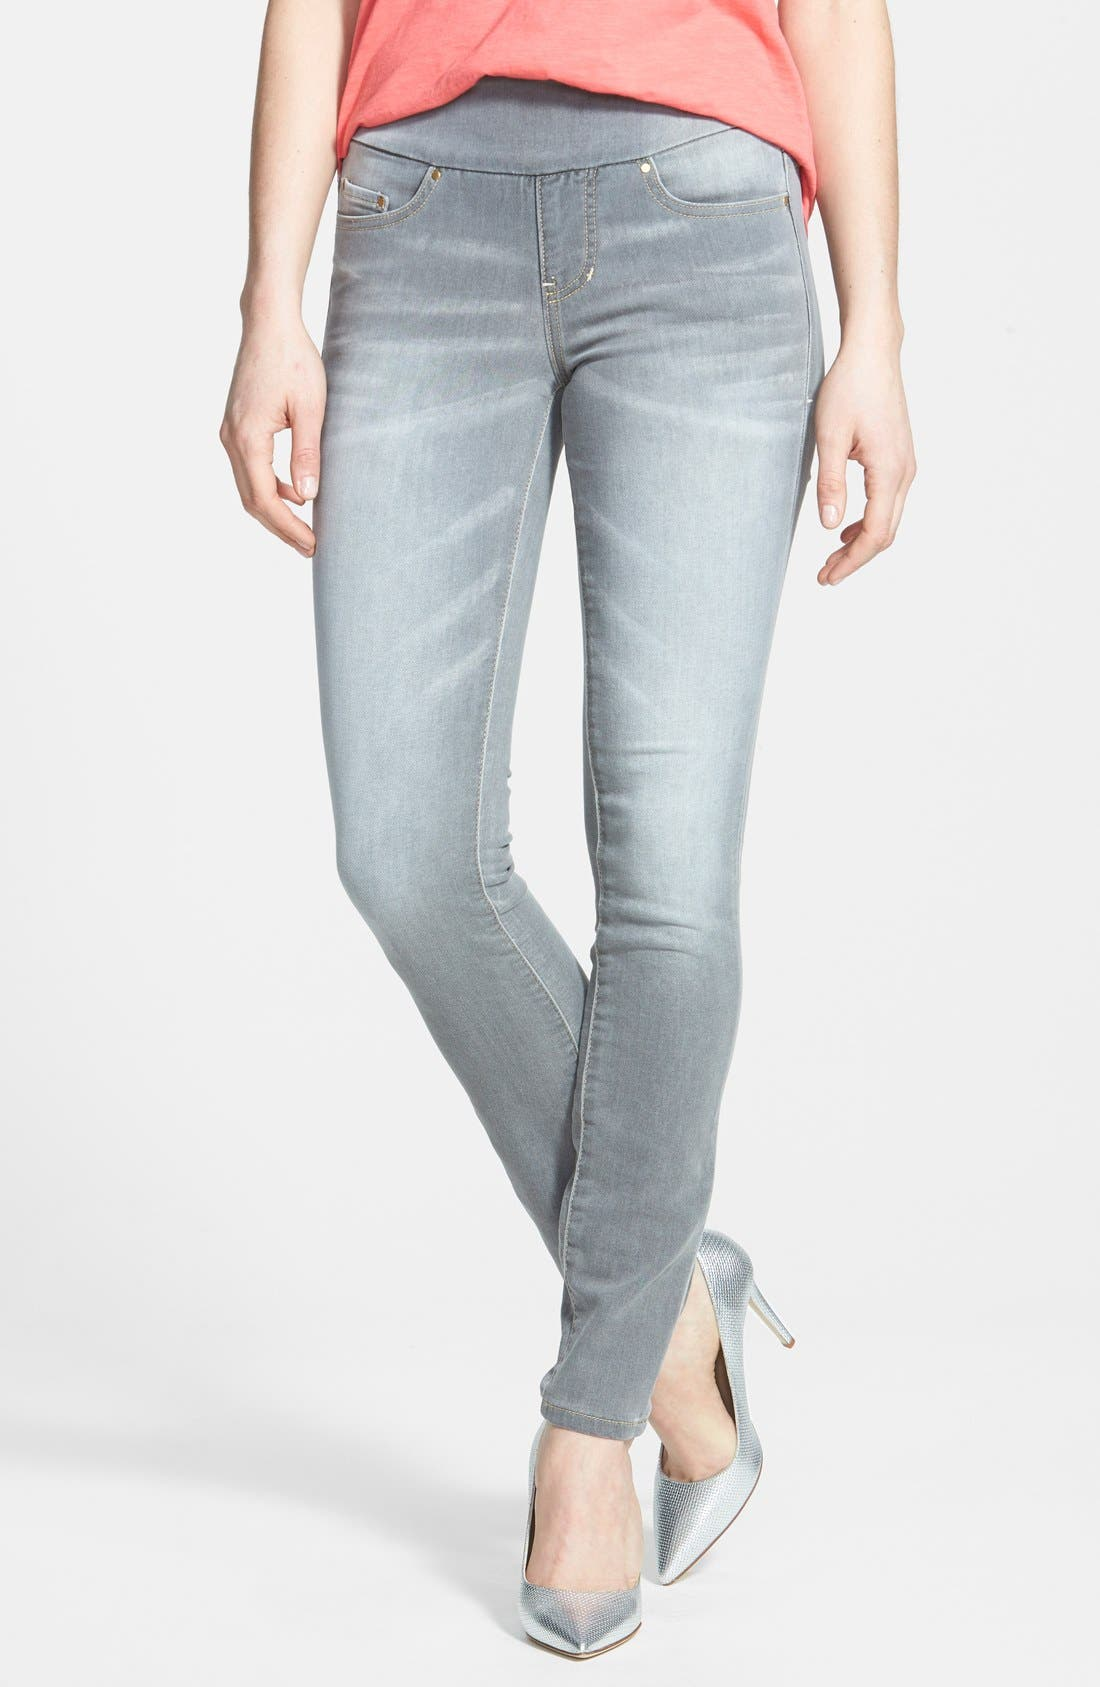 Alternate Image 1 Selected - Jag Jeans 'Nora' Pull-On Stretch Knit Skinny Jeans (Antique Tint)